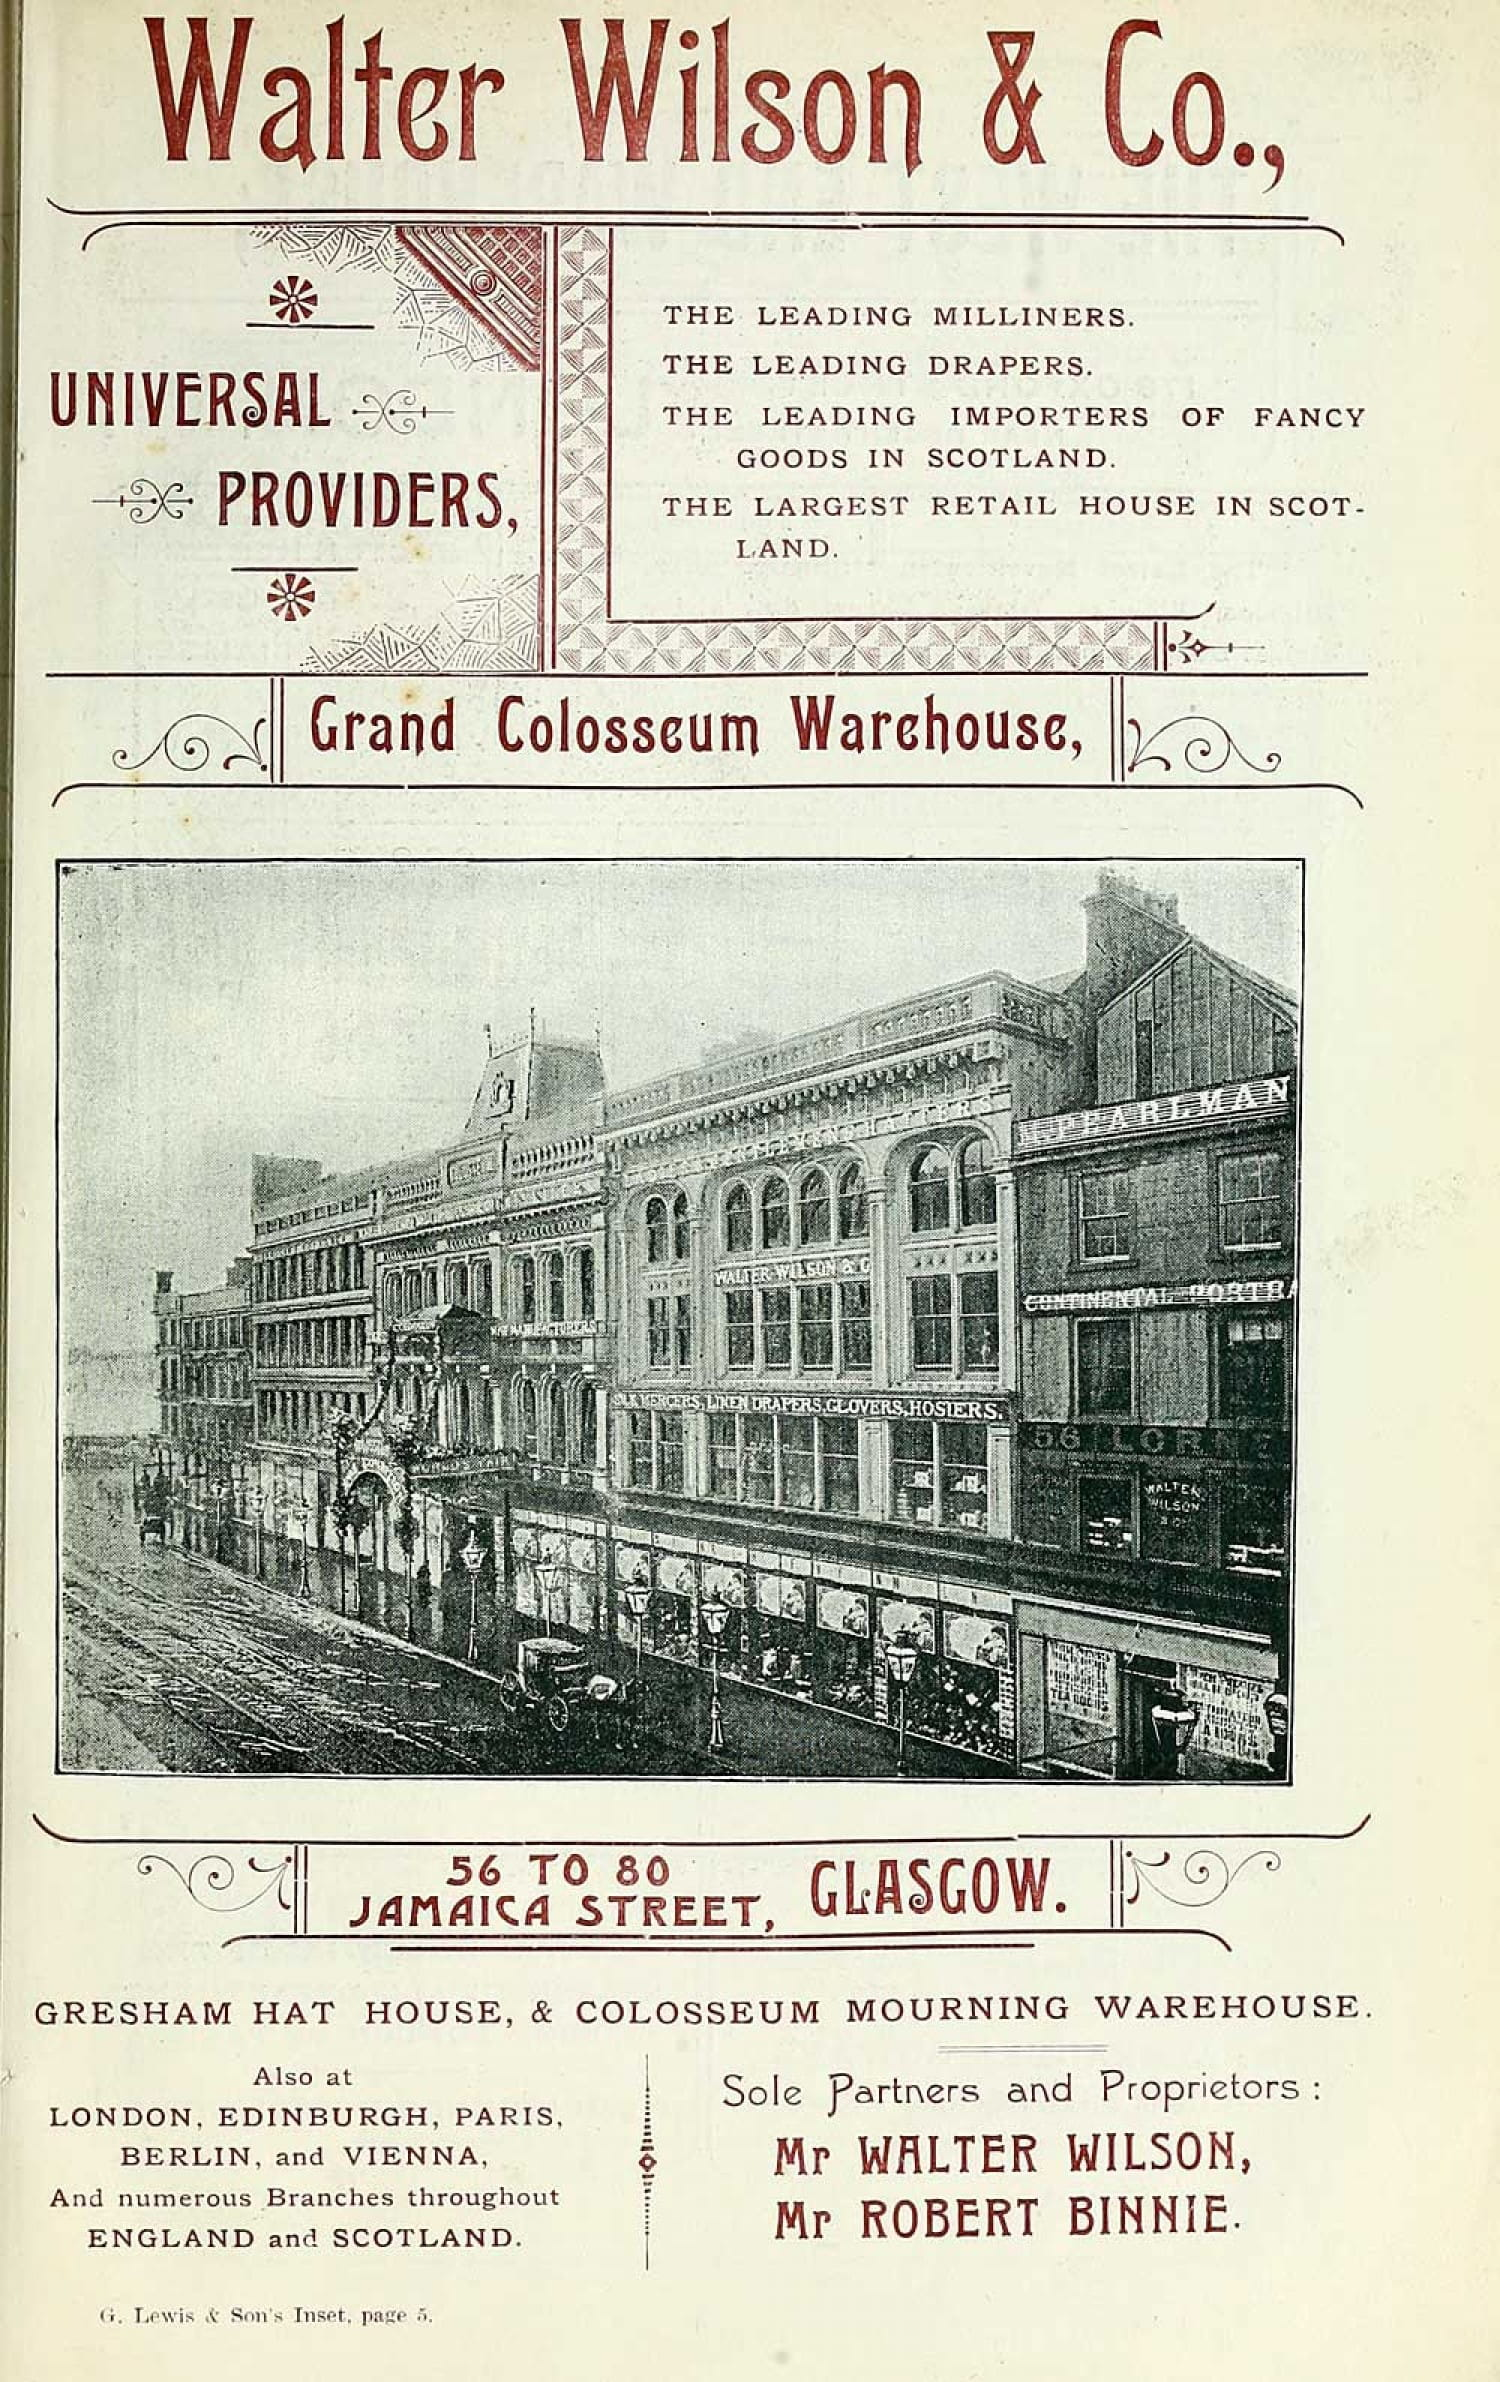 An early advert for his Jamaica Street store